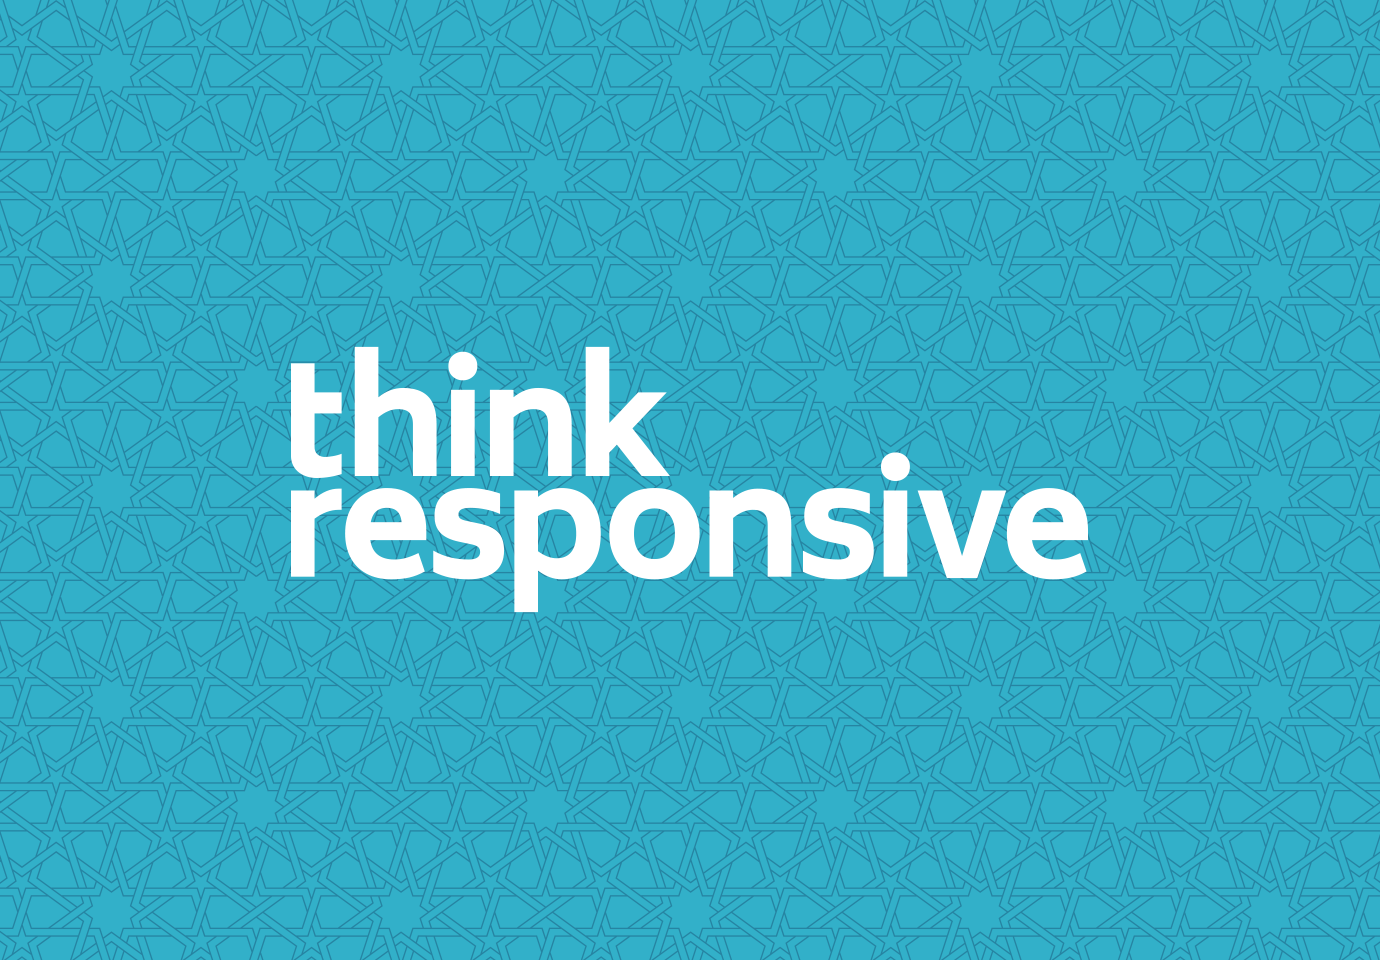 The Think Responsive logotype in white on a teal-colored field overlaid with an intricate geometric pattern.